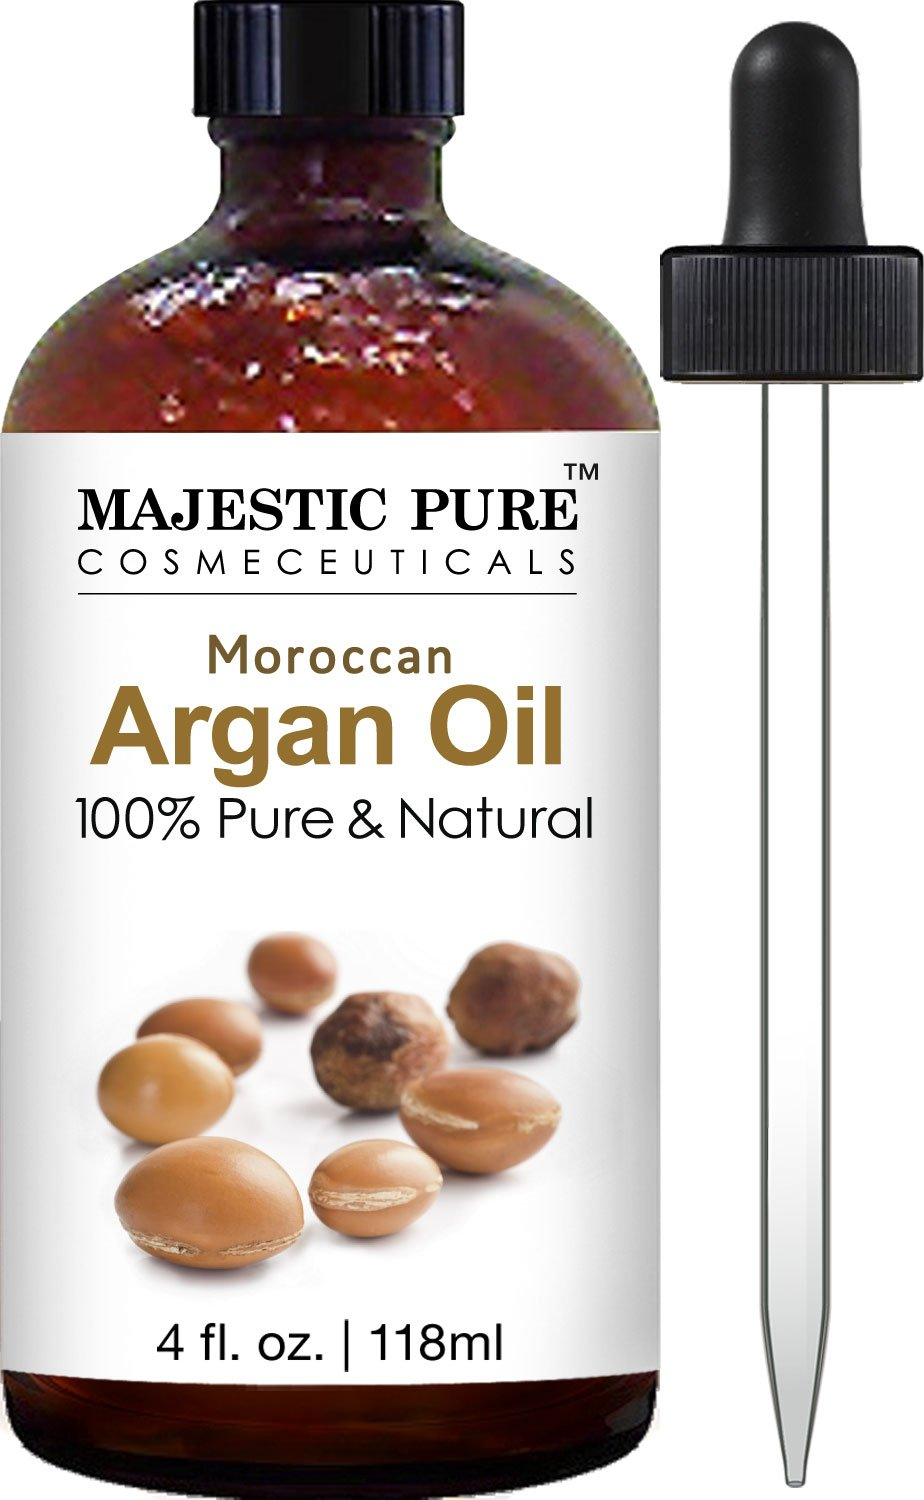 Top 10 Best Argan Oil For Hair Reviews in 2020 6